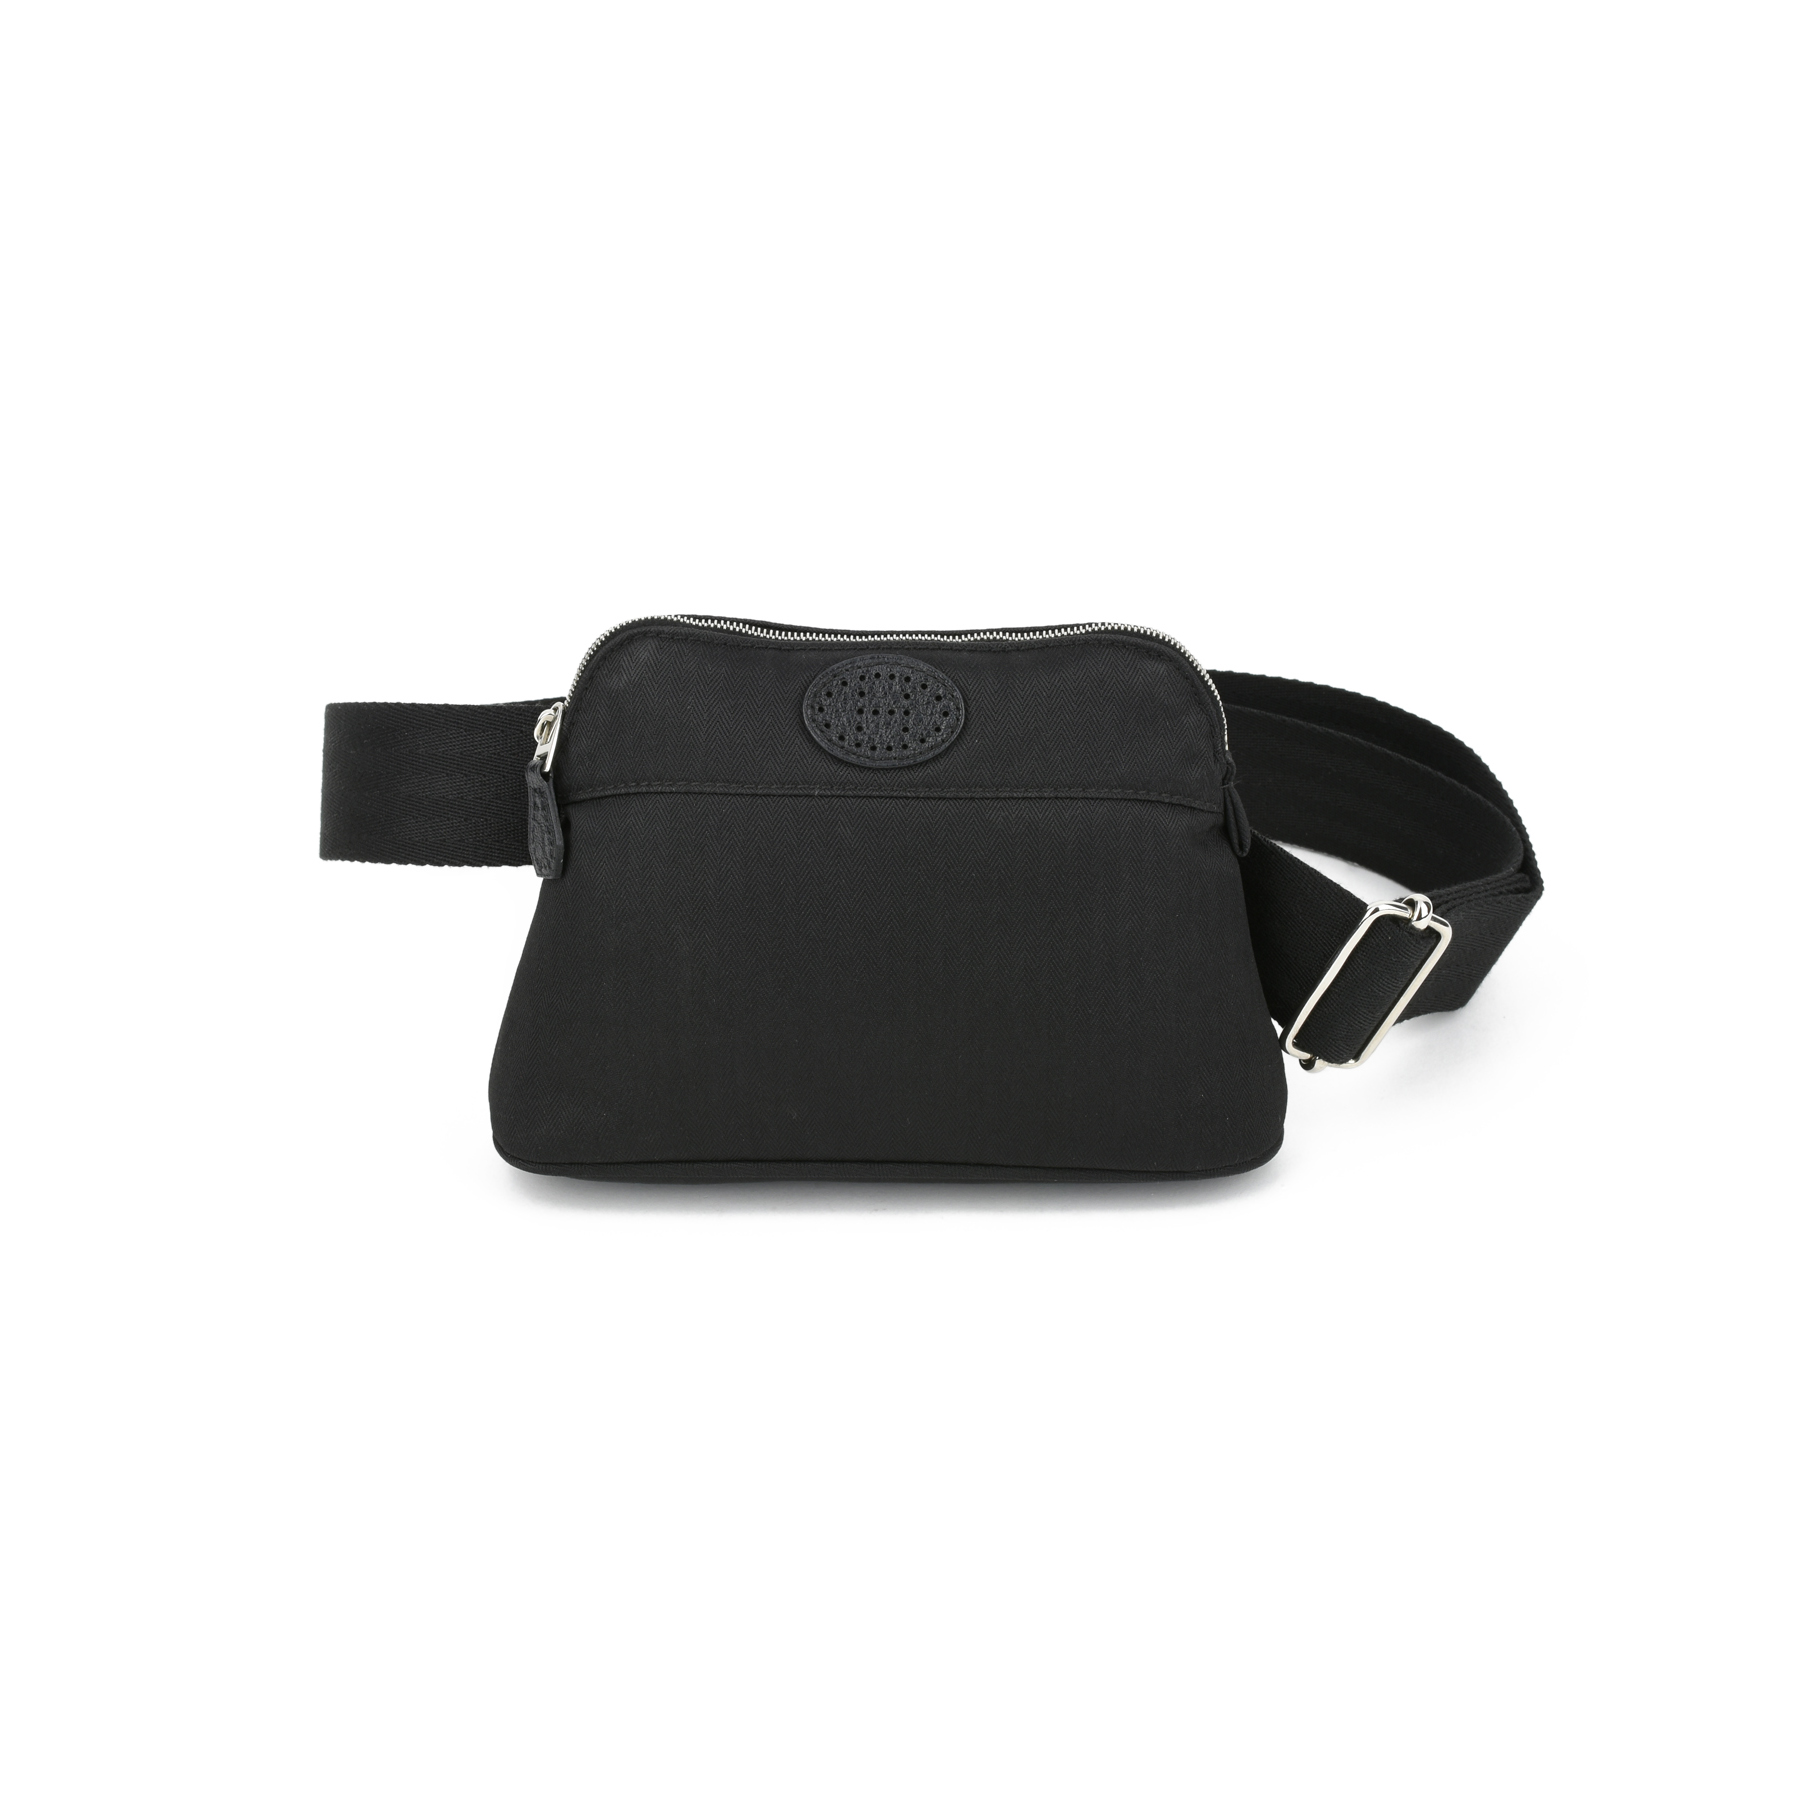 Authentic Pre Owned Hermès Pochette Ceinture Balle De Golf Waist Pouch  (PSS-126-00051)   THE FIFTH COLLECTION® 2a53802a696